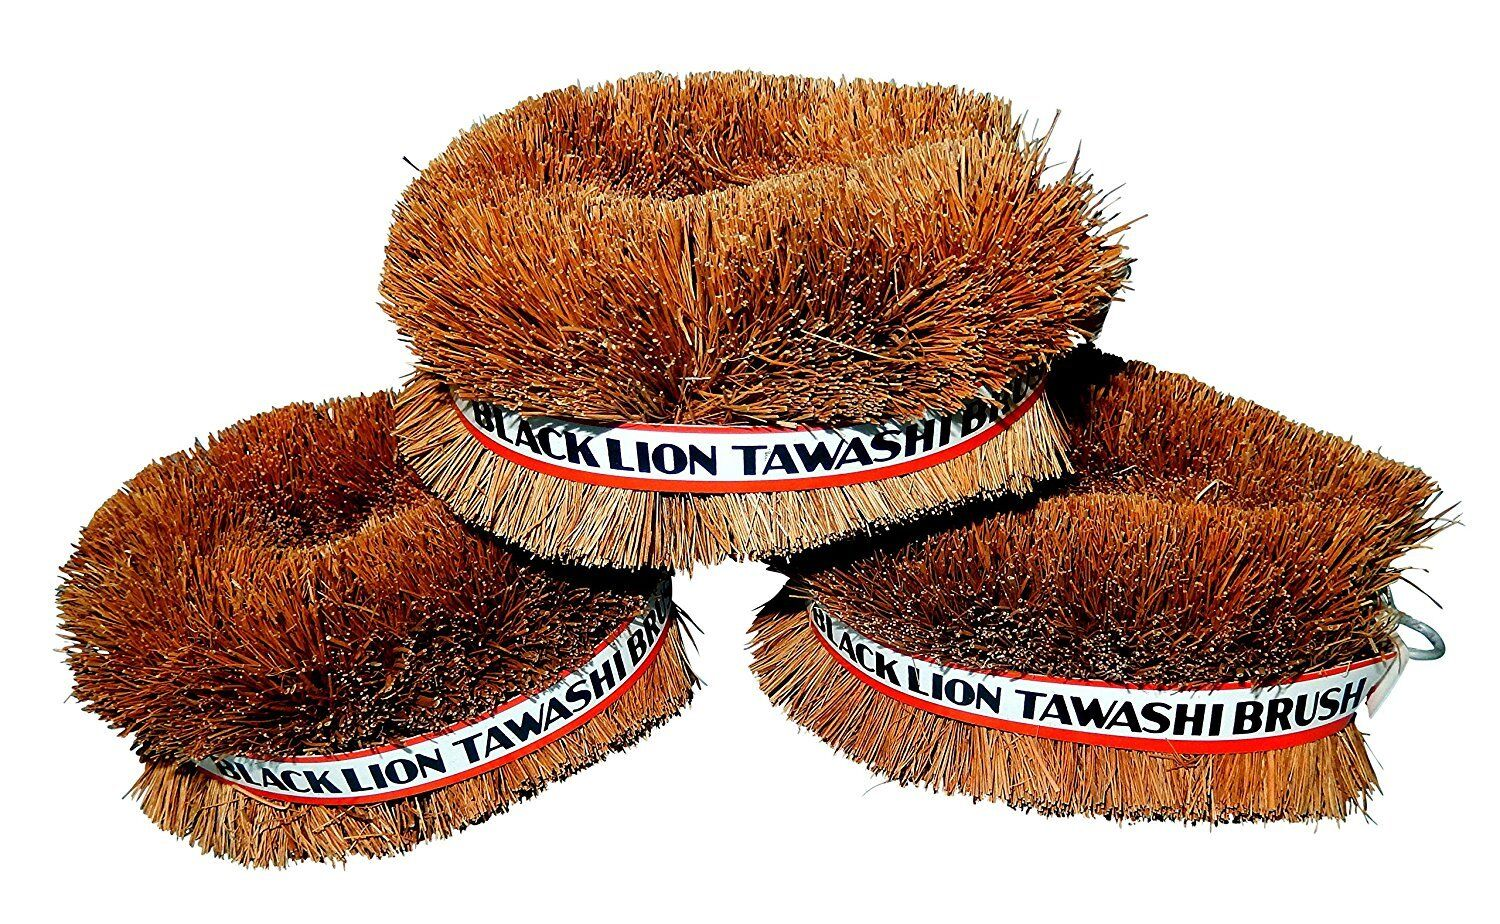 Set of 3 Black Lion Tawashi Vegetable Cleaning Scrubbing Brush, Made in Japan